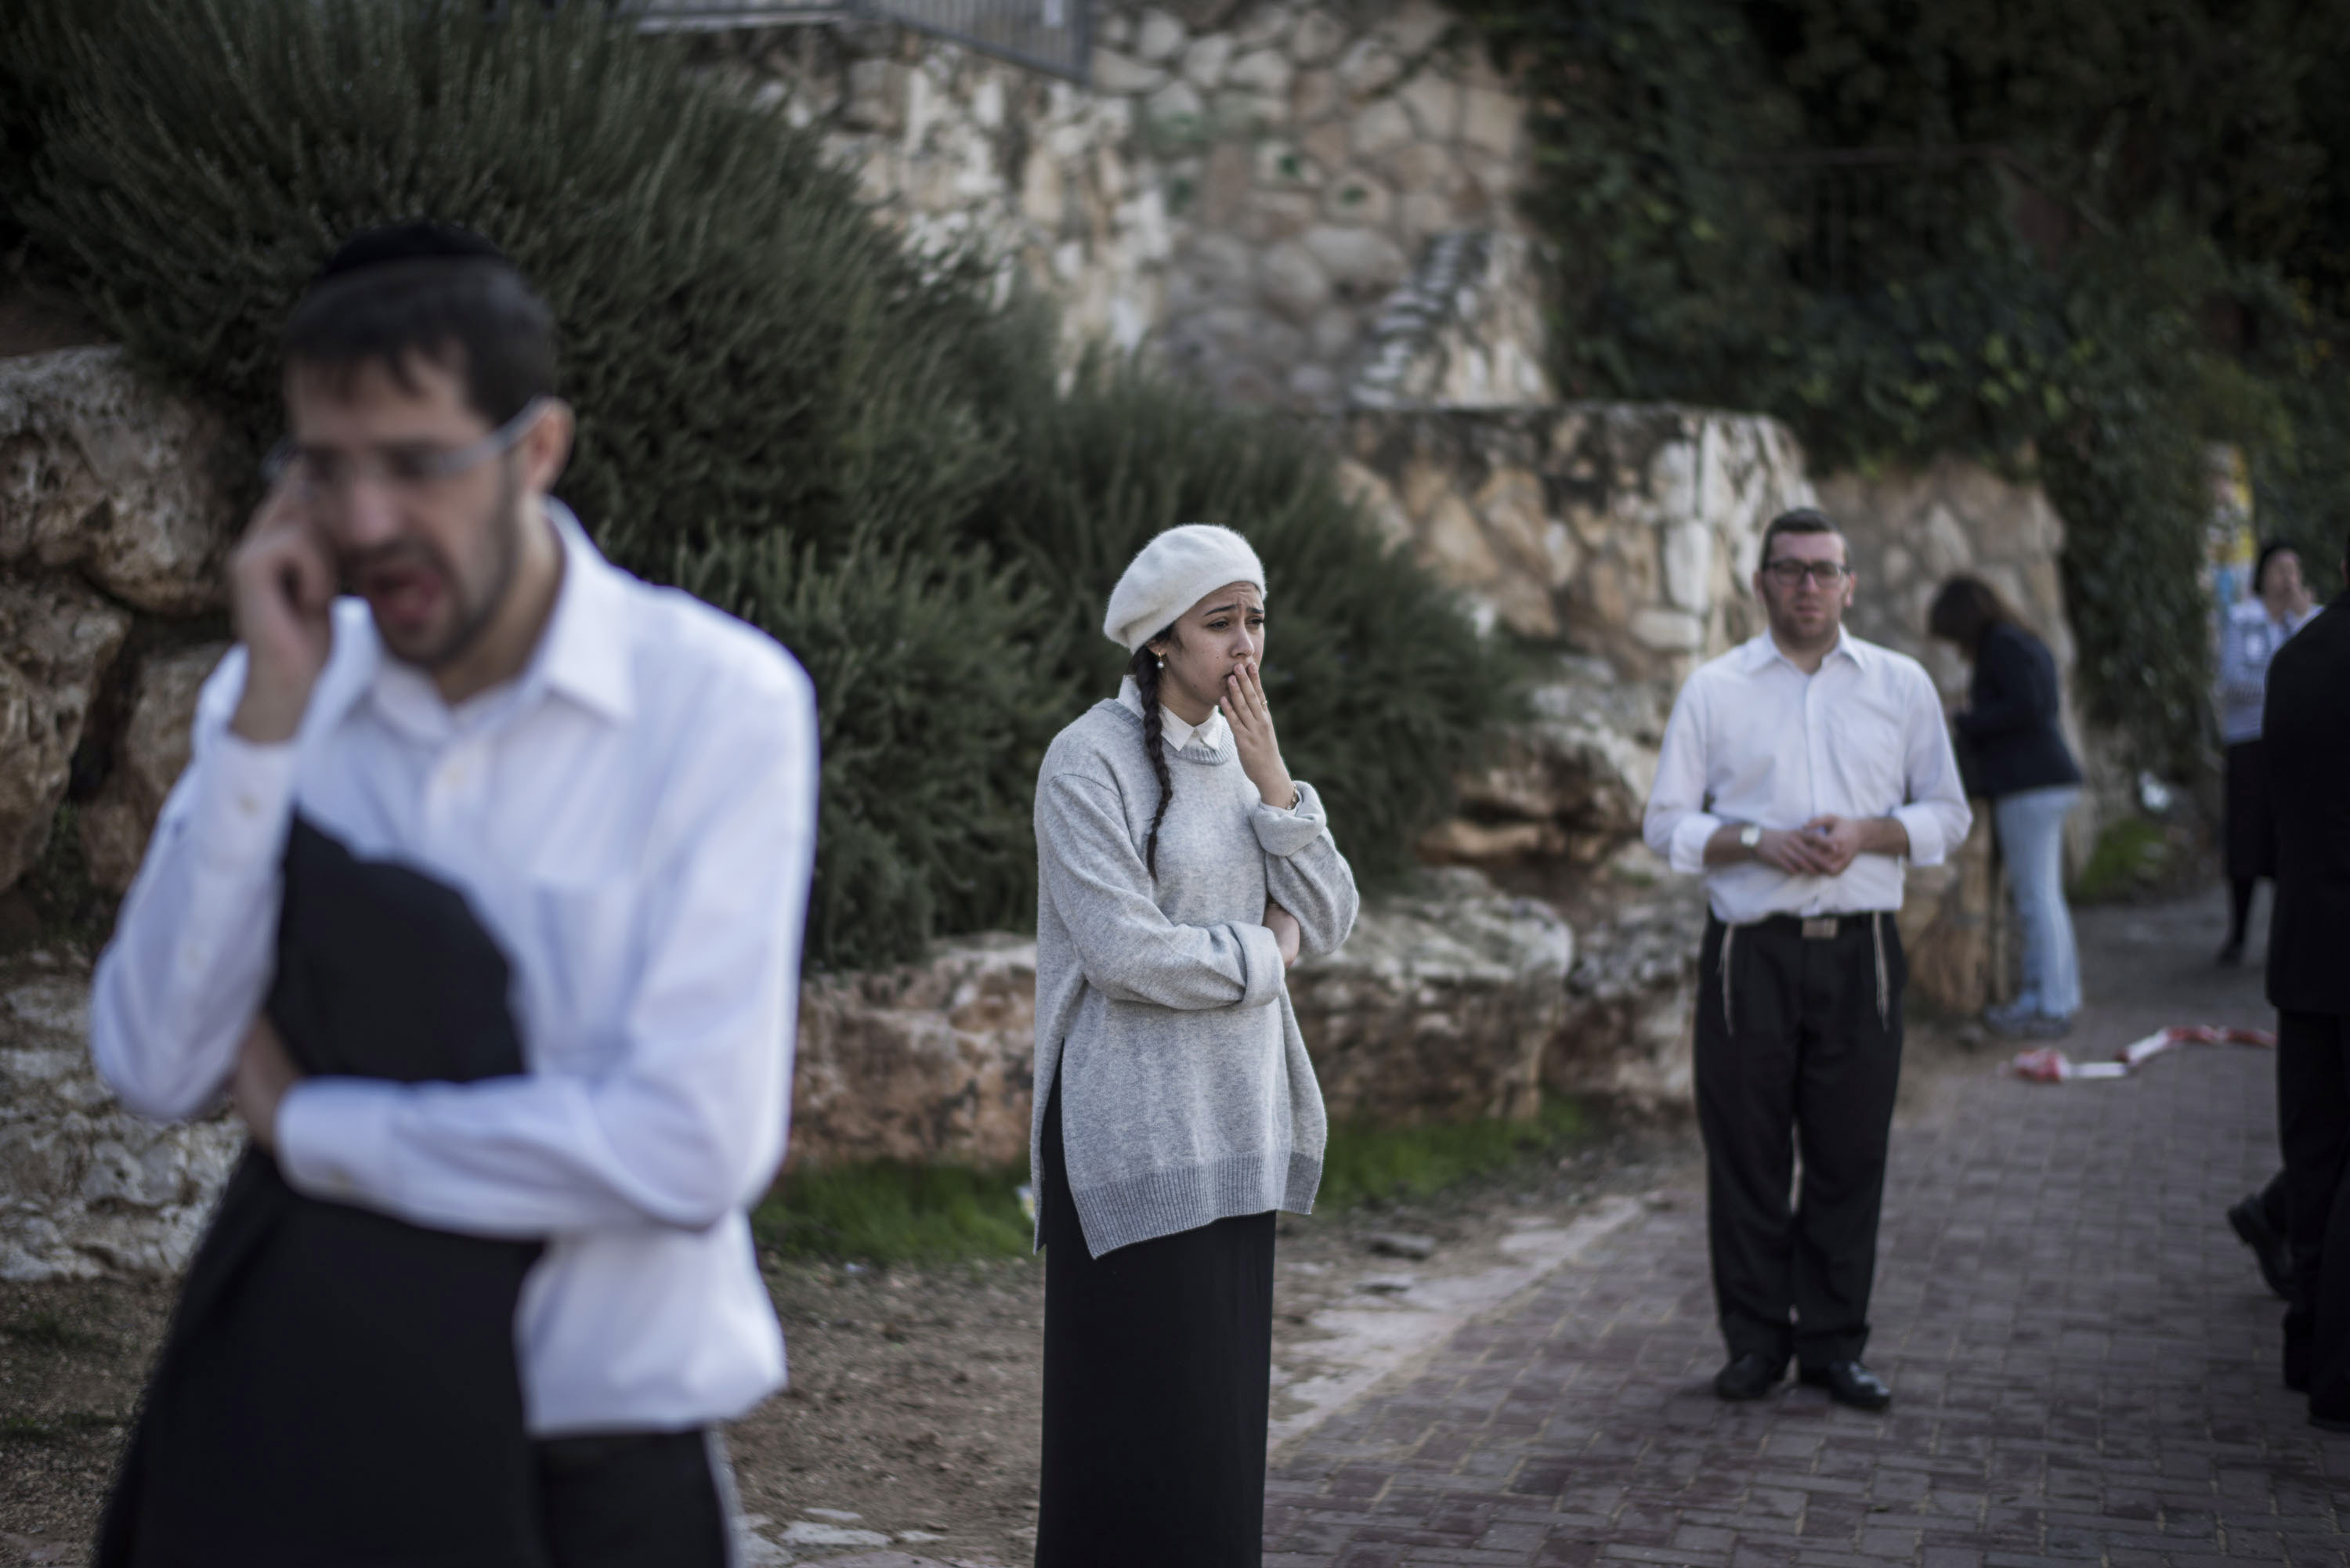 Toll In Jerusalem Synagogue Attack Rises To 5